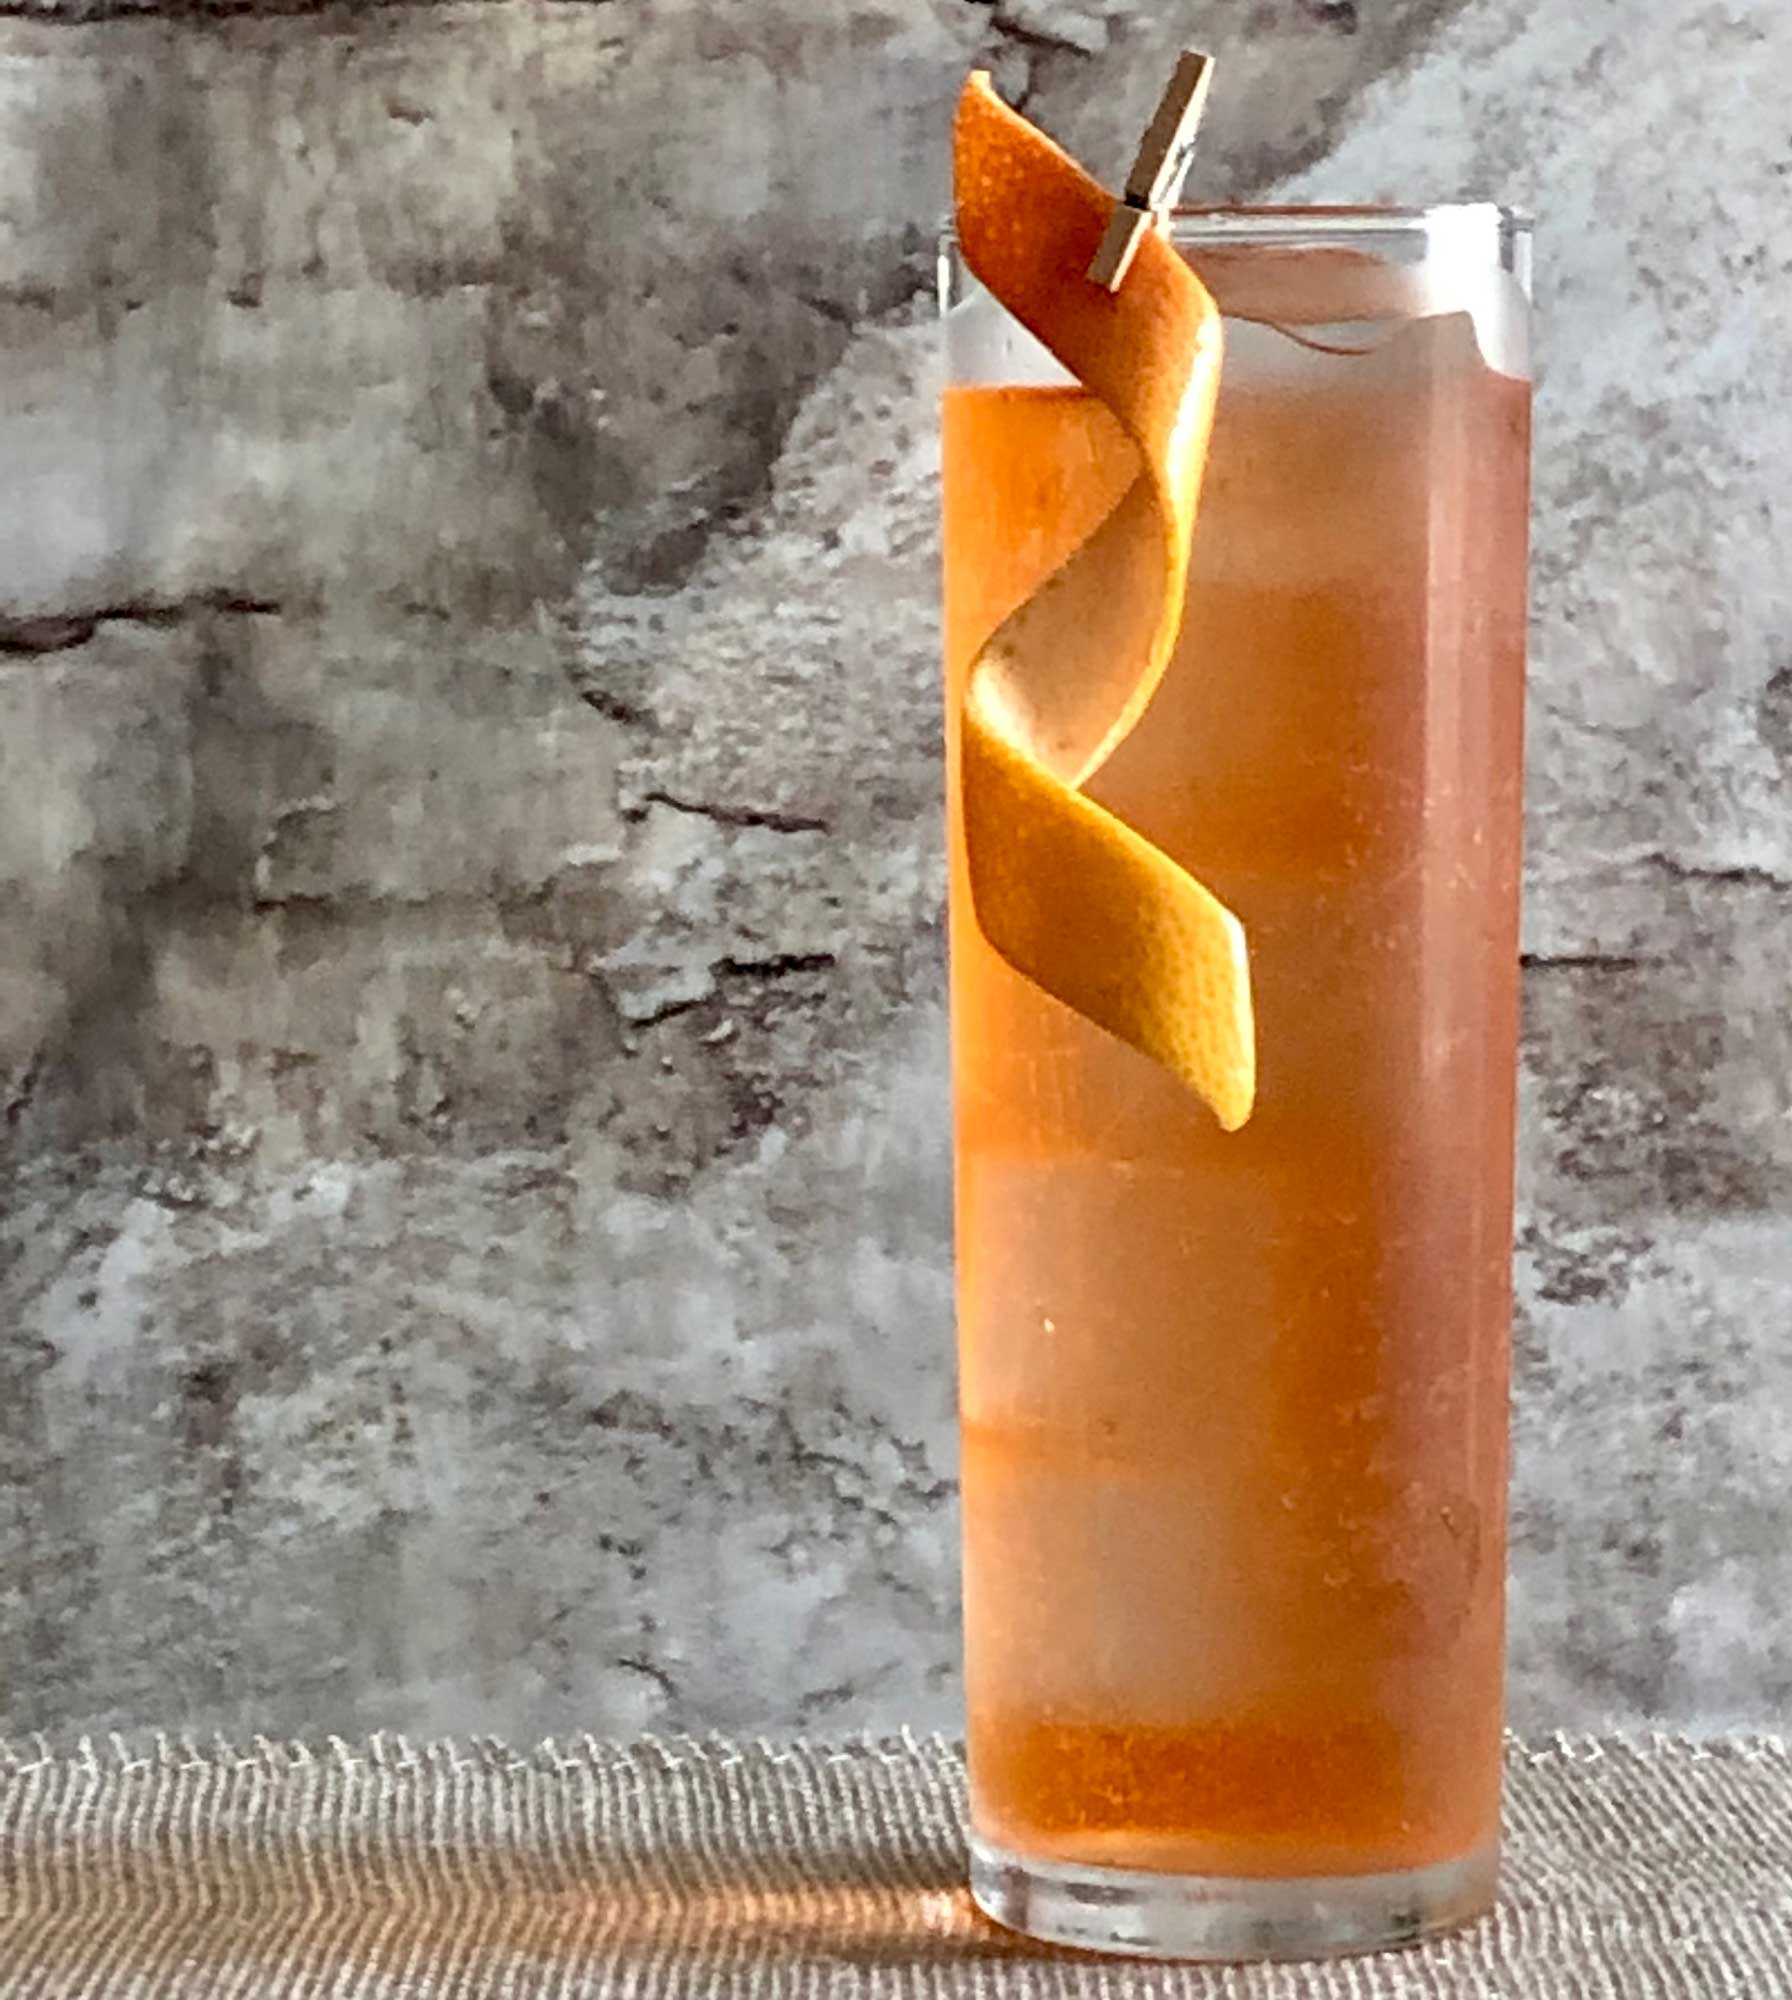 An example of the Mesa Spritz, the mixed drink (cocktail) featuring soda water, Dolin Dry Vermouth de Chambéry, and Aperitivo Cappelletti; photo by Lee Edwards